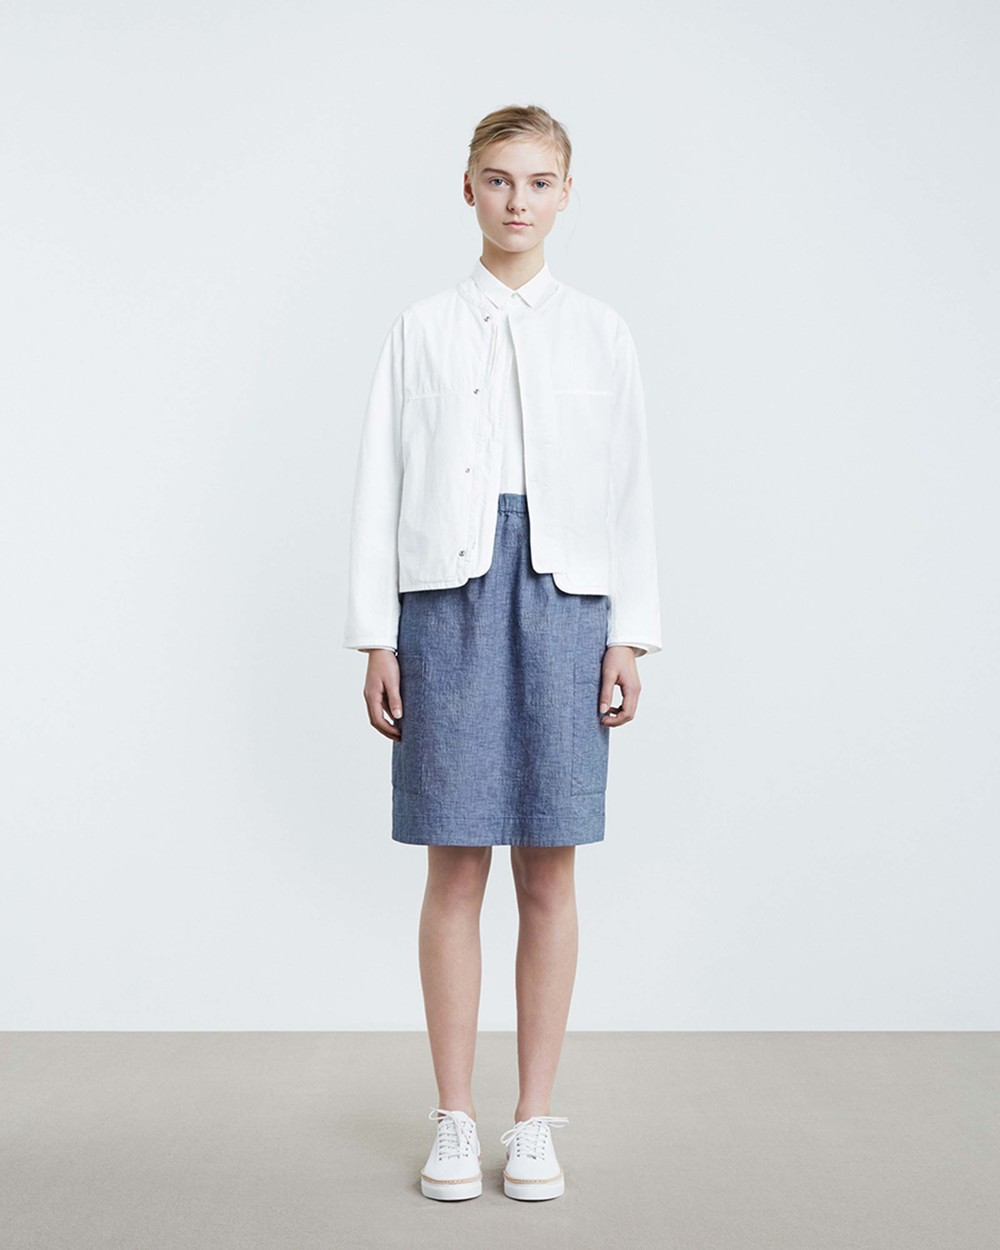 OuurMedia_OuurCollectionSS16_07.jpg